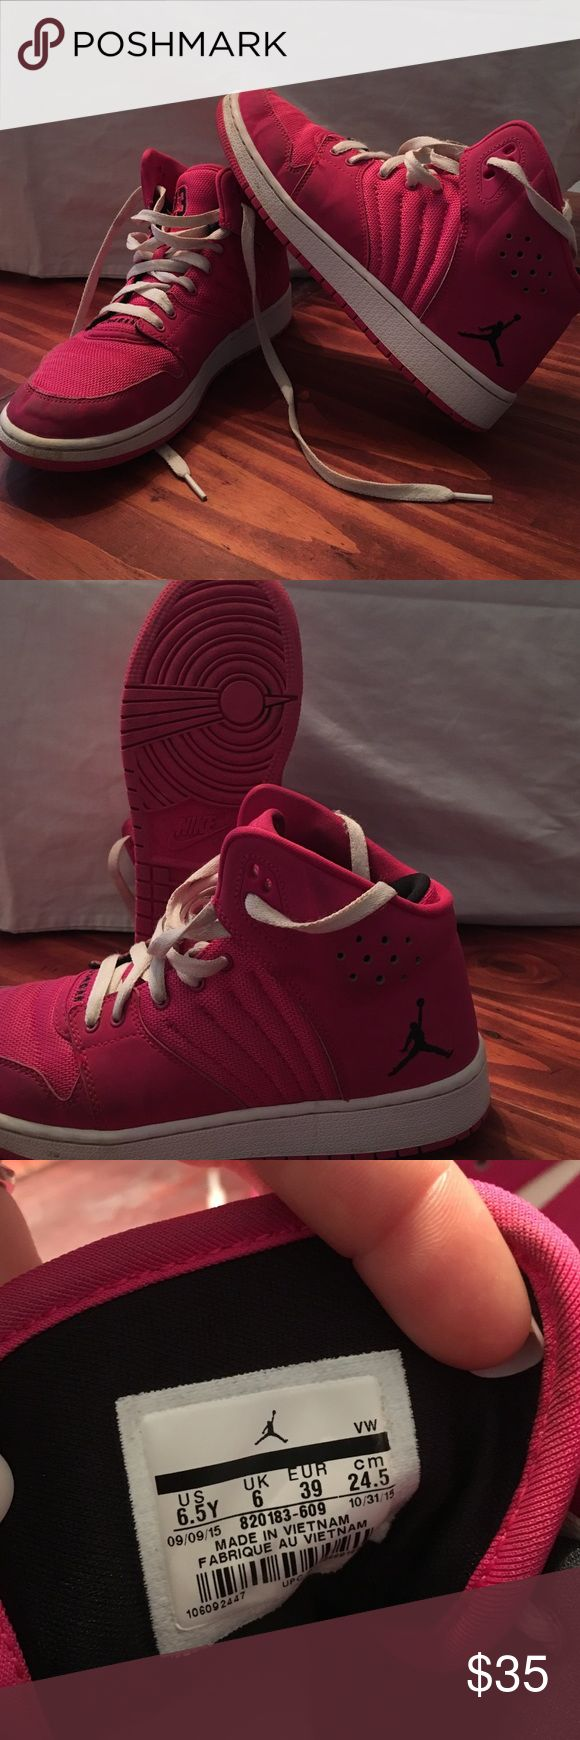 Pink Jordan tennis shoes Pink and white Jordan's size 6.5 just needs a little cleaning on outside never been wet daughter just doesn't like them anymore and didn't wear them but a few times Jordan Shoes Athletic Shoes